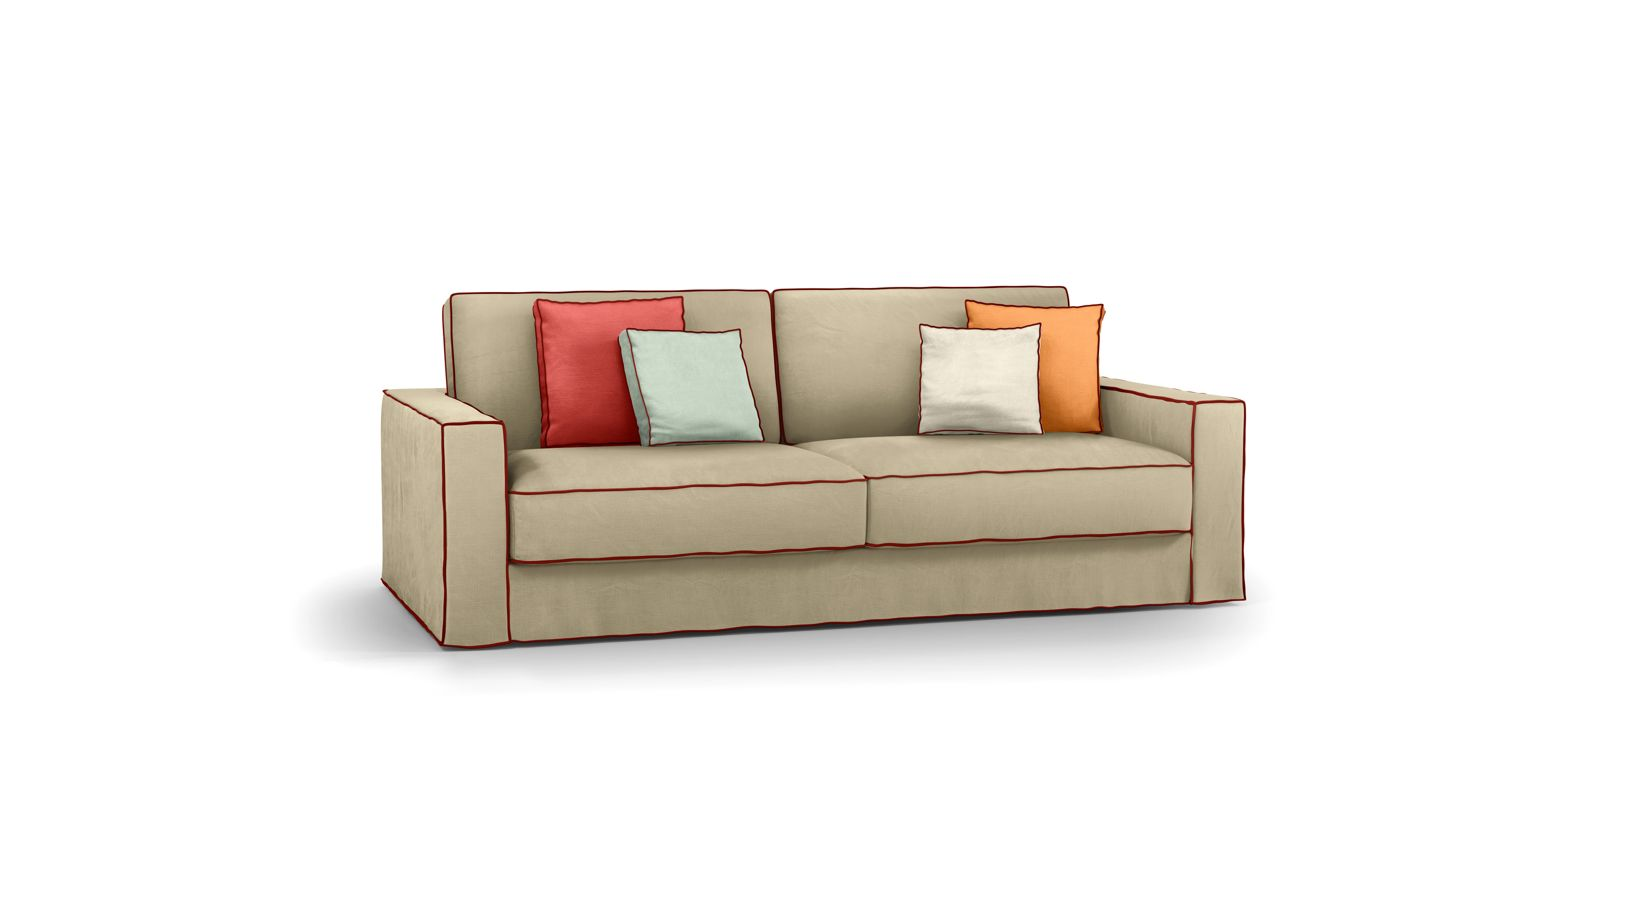 Roche bobois sofas london for Sofa 1 80 breit